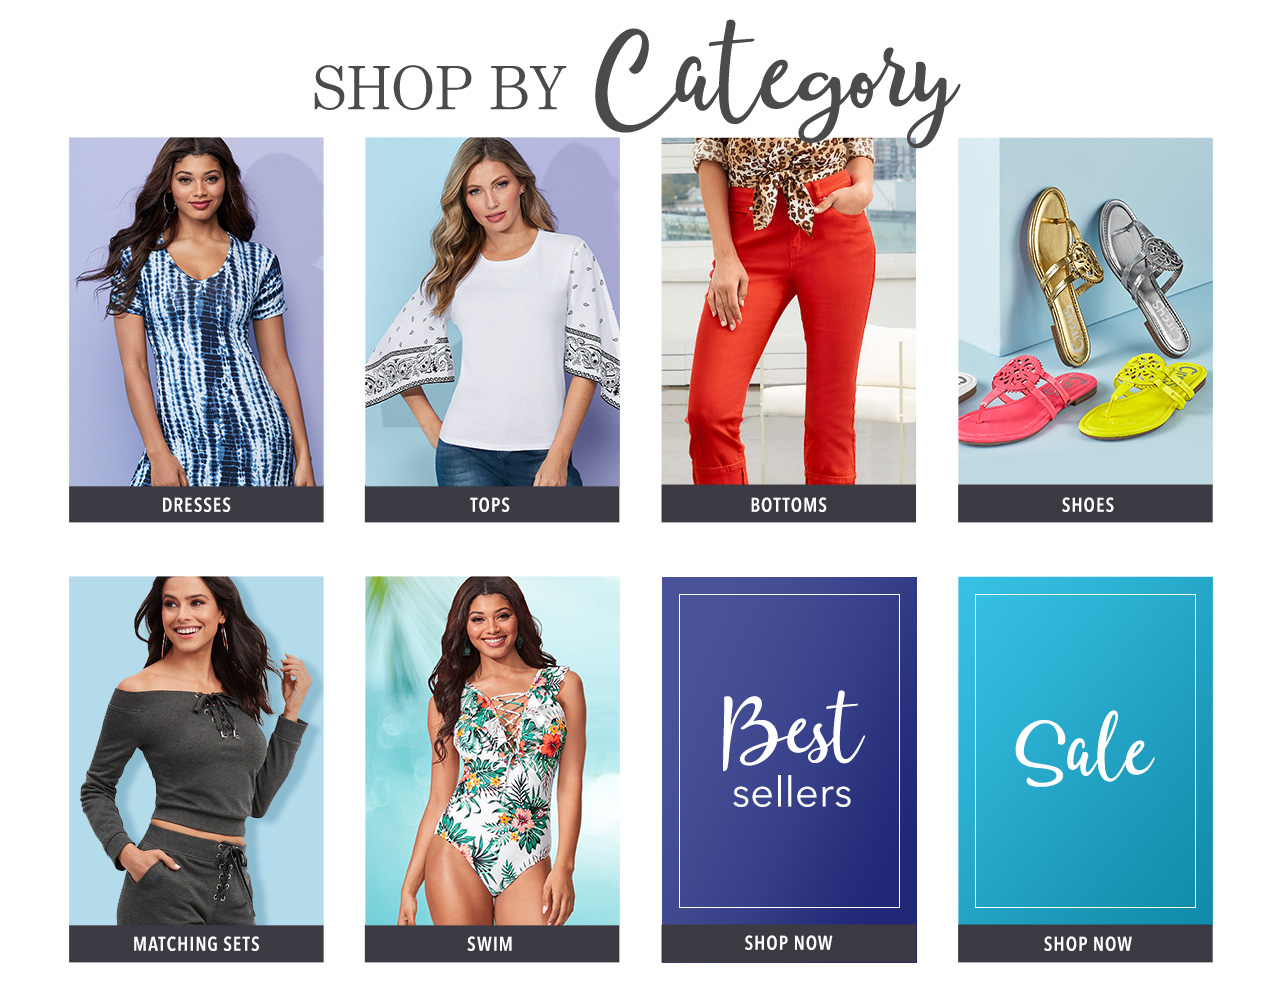 Shop dresses, tops, jeans, shoes, matching sets, swimwear, best sellers, sale, and pay later with K. Jordan Credit.